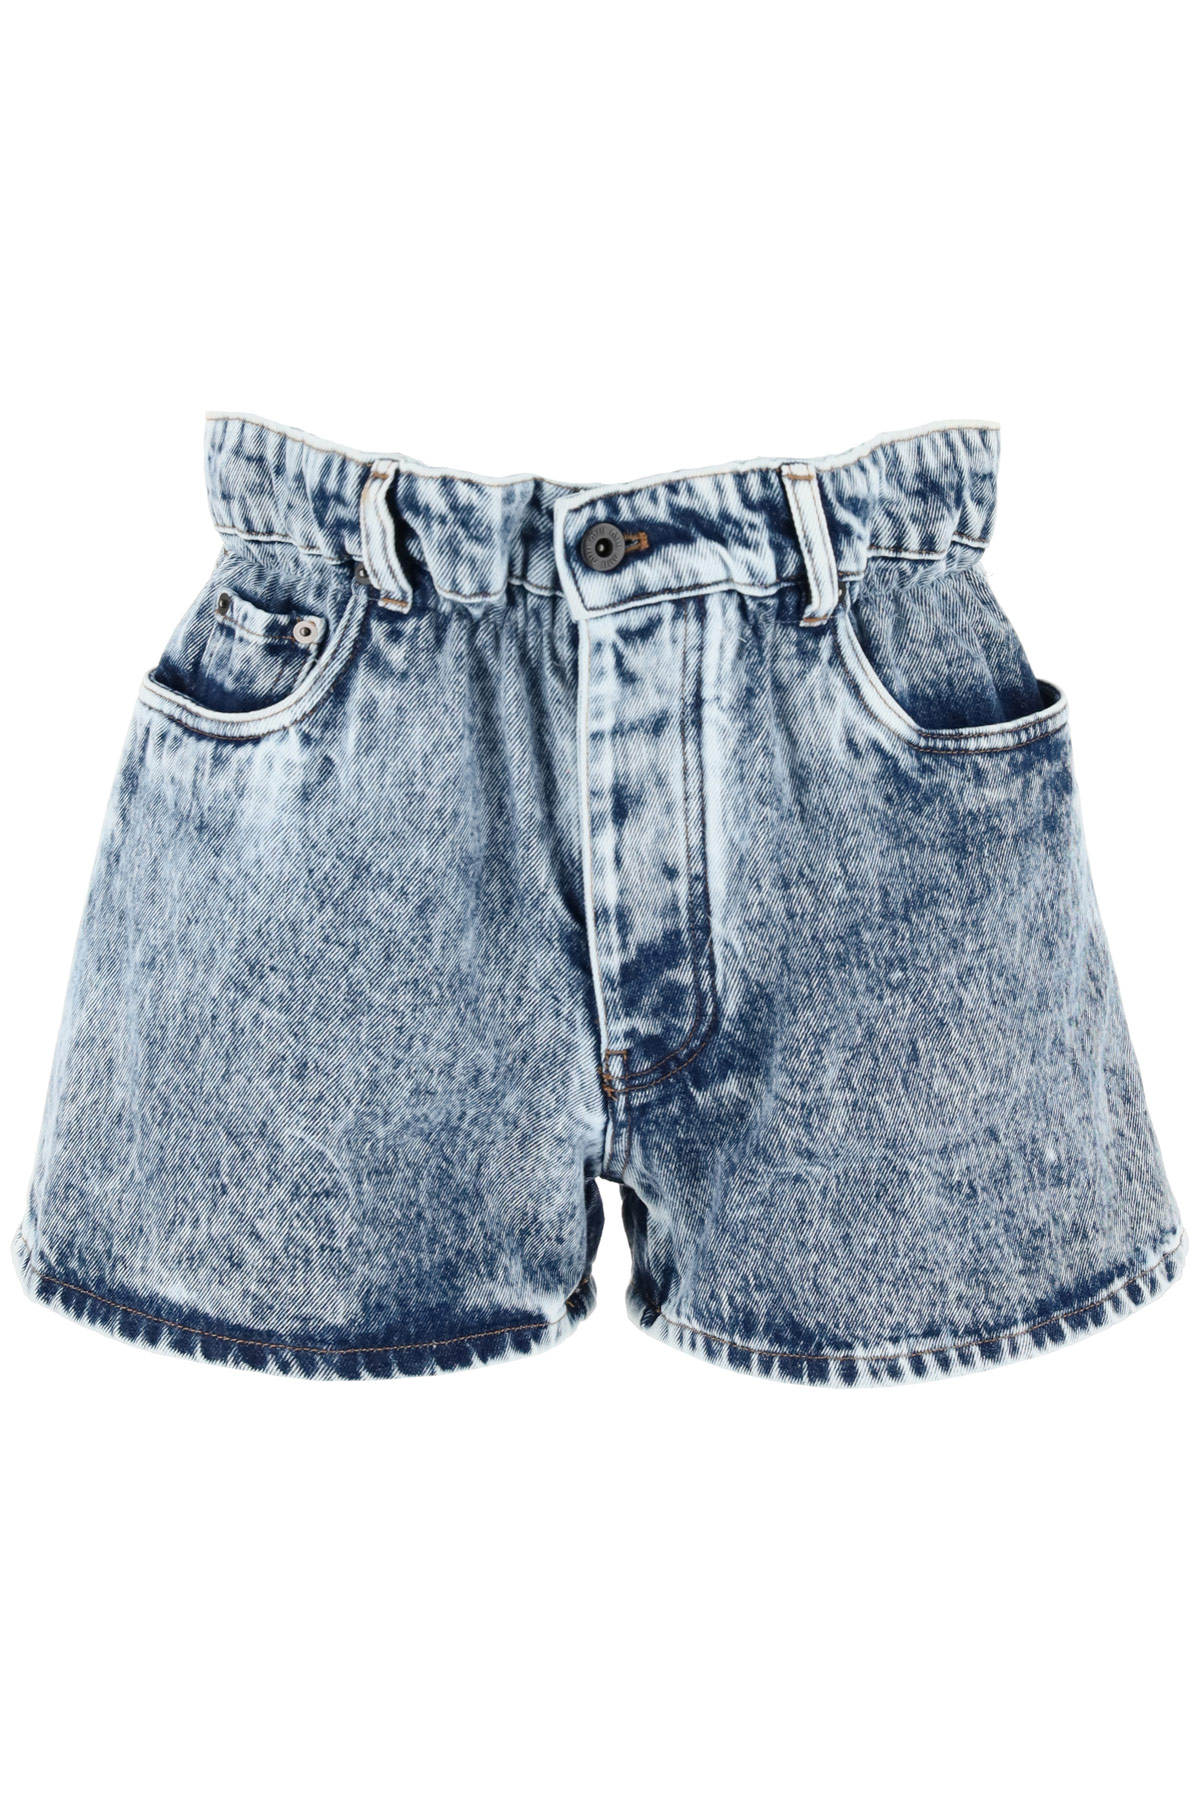 SHORTS DENIM MARMORIZZATO PAPER BAG